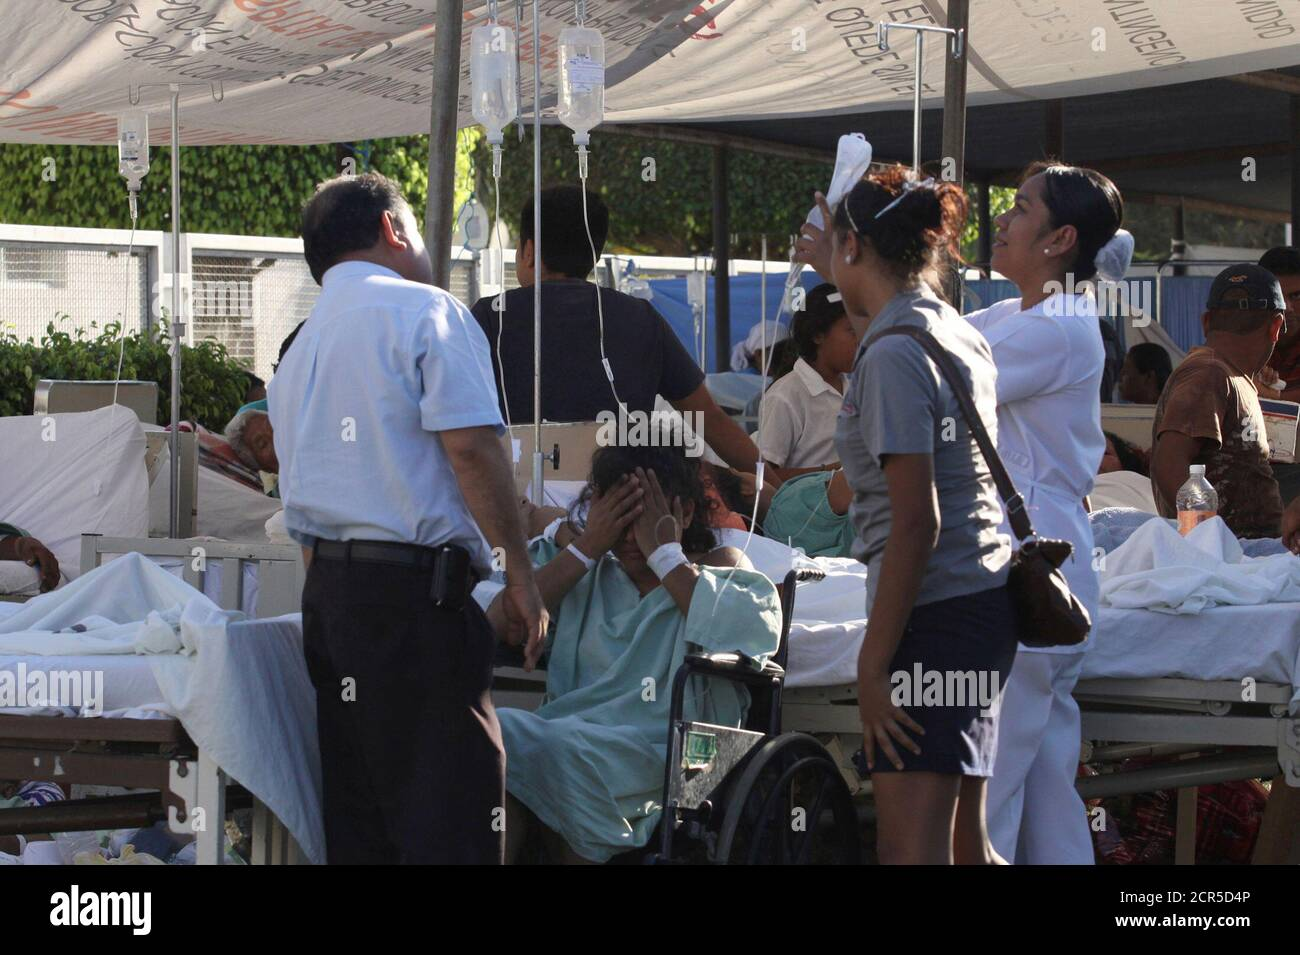 A patient in a wheelchair is attended to by a nurse at a makeshift emergency room after being evacuated from a hospital damaged by an earthquake on Tuesday in Ometepec in the Mexican state of Guerrero March 20, 2012. The 7.4-magnitude quake hit hardest in the southwestern state of Guerrero, where around 800 houses were damaged, officials said. The state governor Angel Aguirre said he had reports of homes being knocked down, though state authorities could not confirm this. REUTERS/Jacob Garcia (MEXICO - Tags: DISASTER) Stock Photo